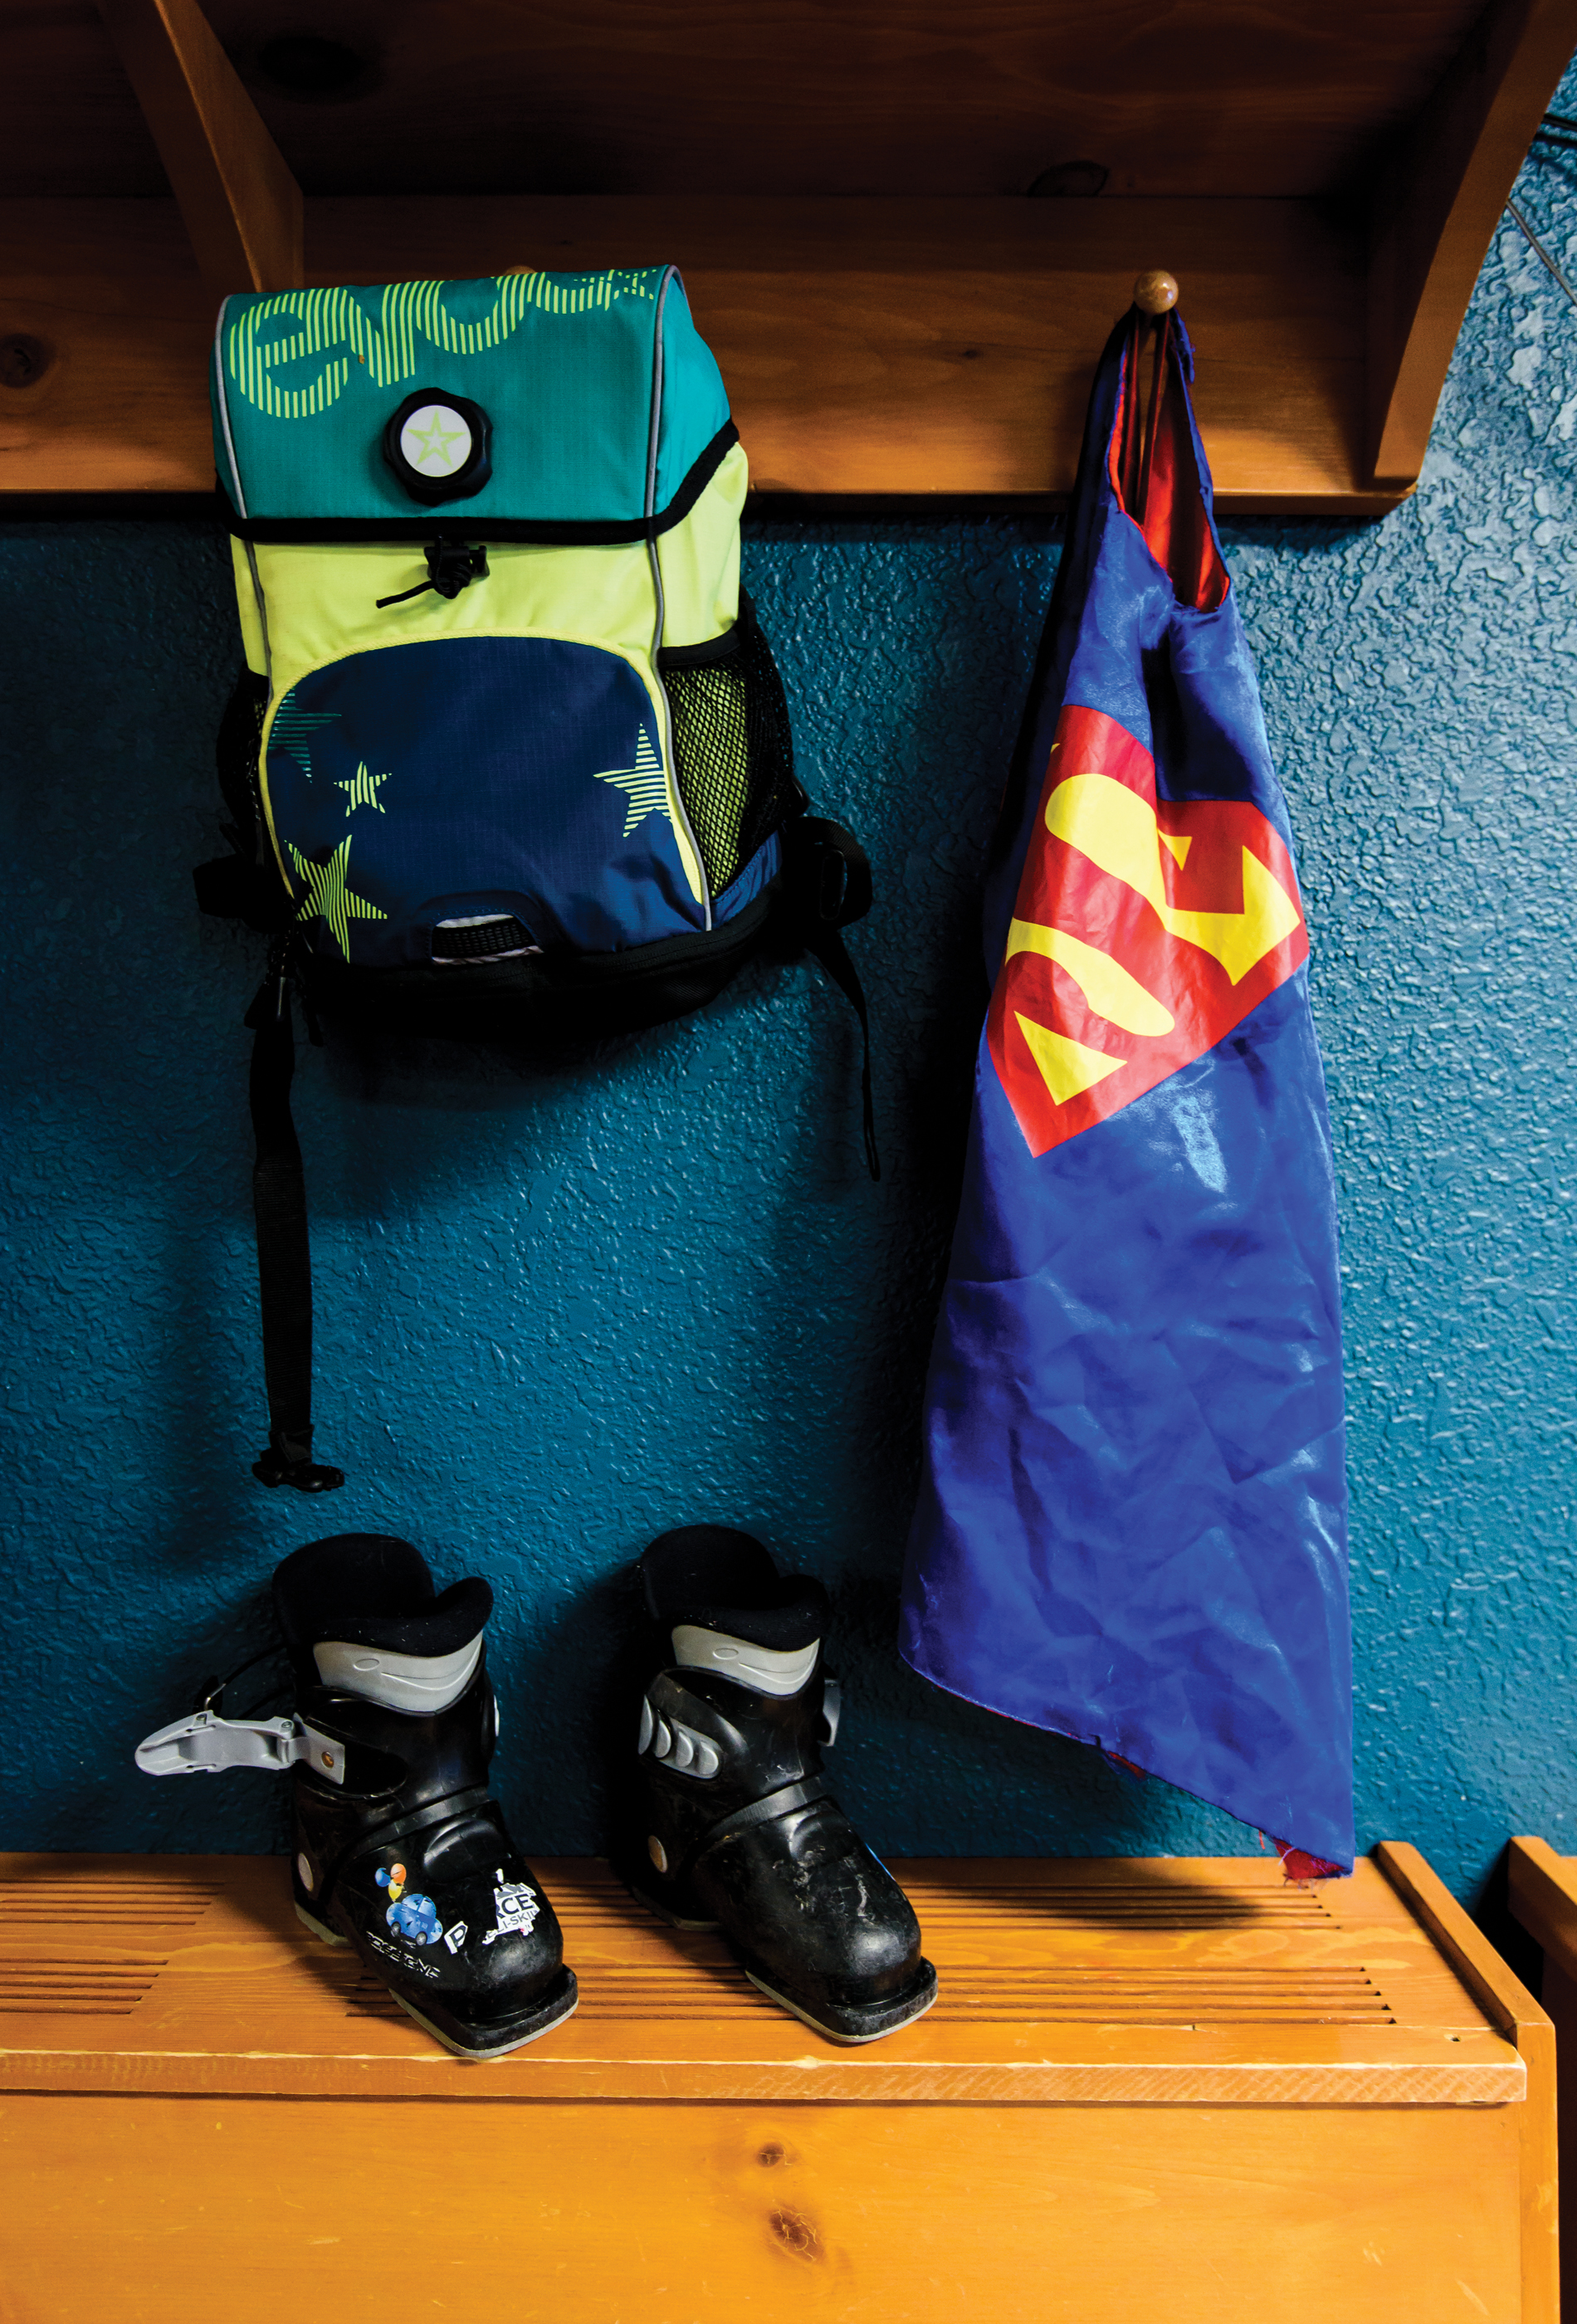 A Student's Cubby at Sun Peaks. PHoto by Bruno Long.